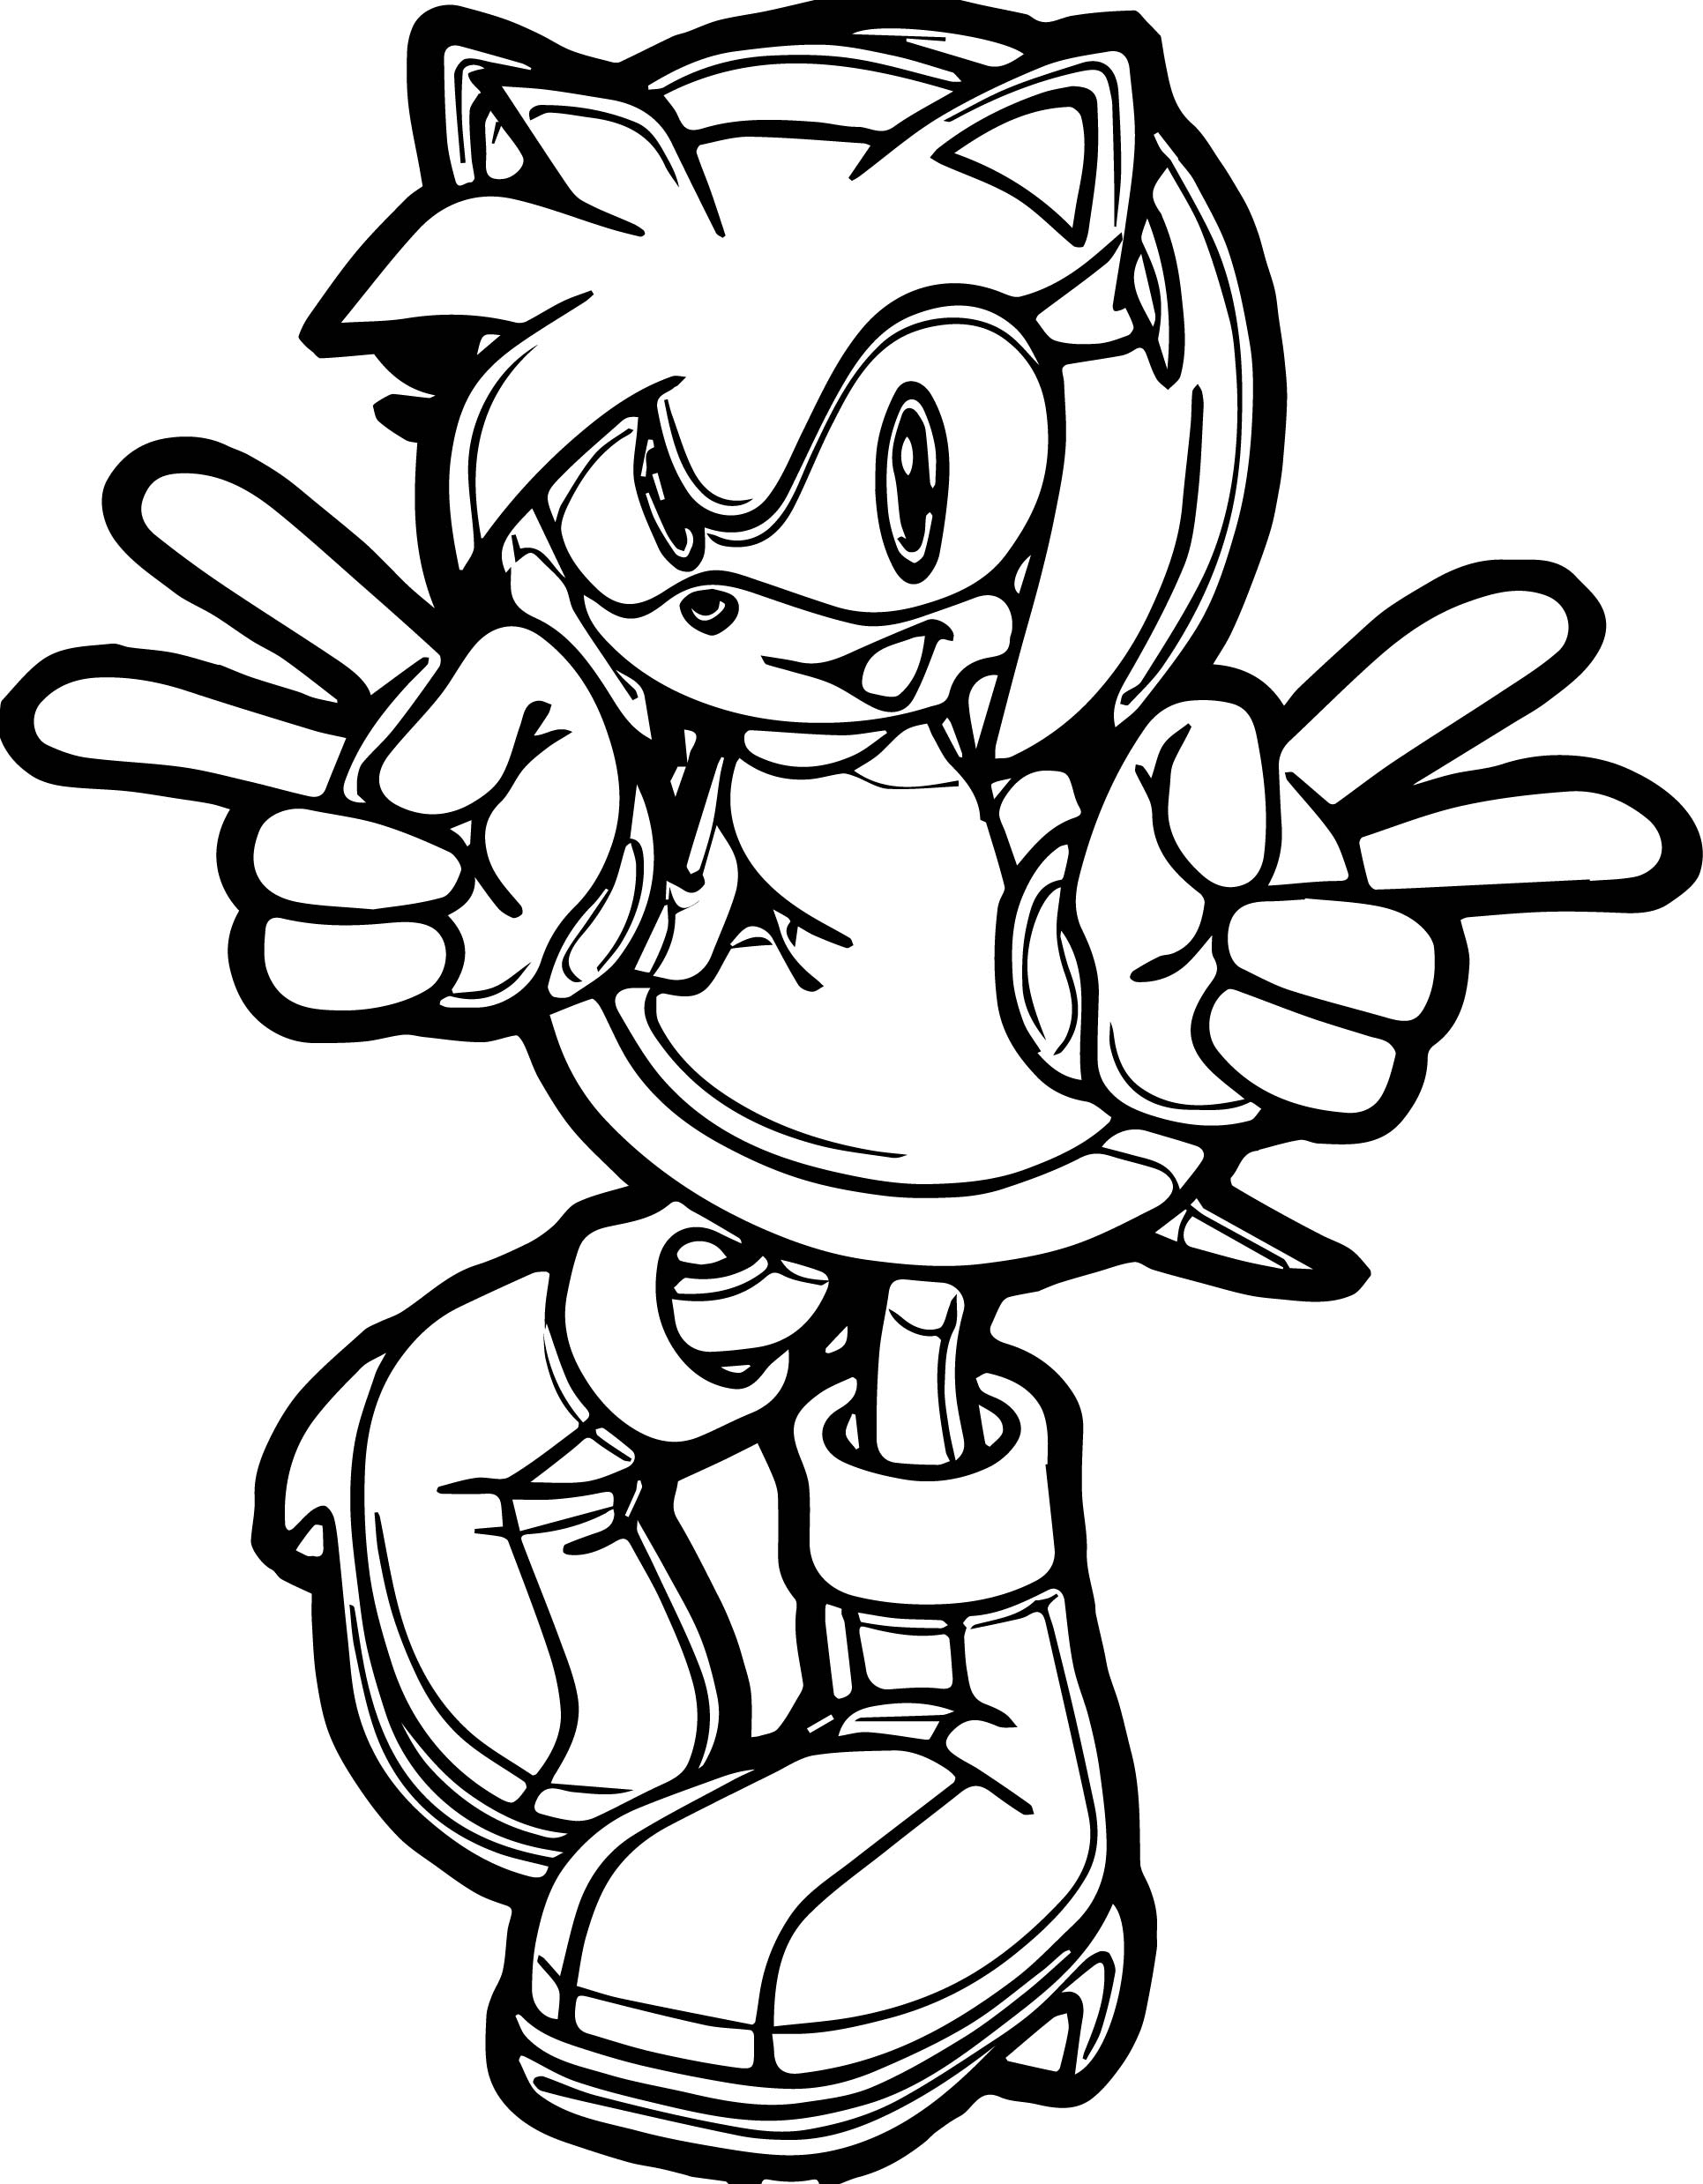 Amy Rose Peace Coloring Pages